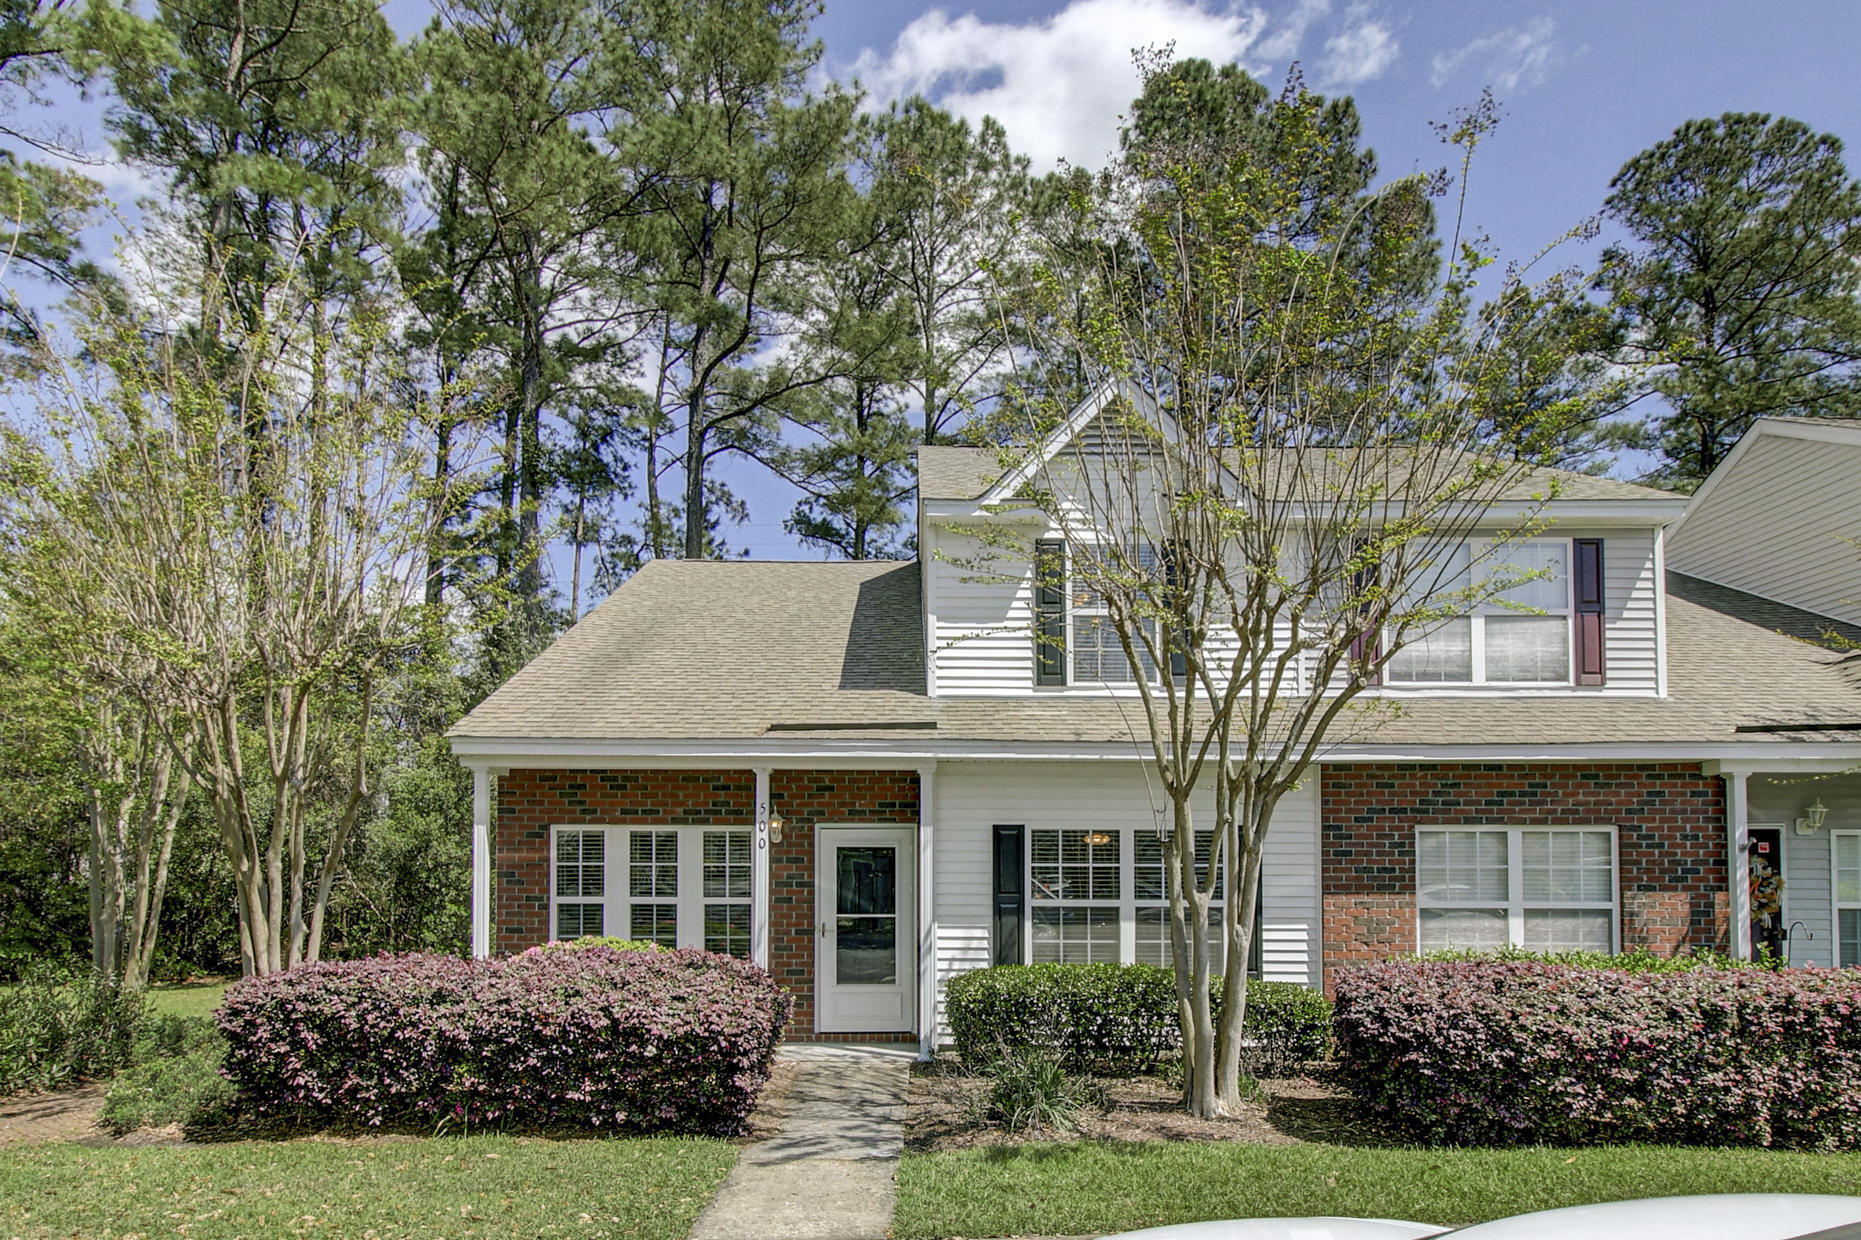 500 Pond Pine Trail Summerville, SC 29483